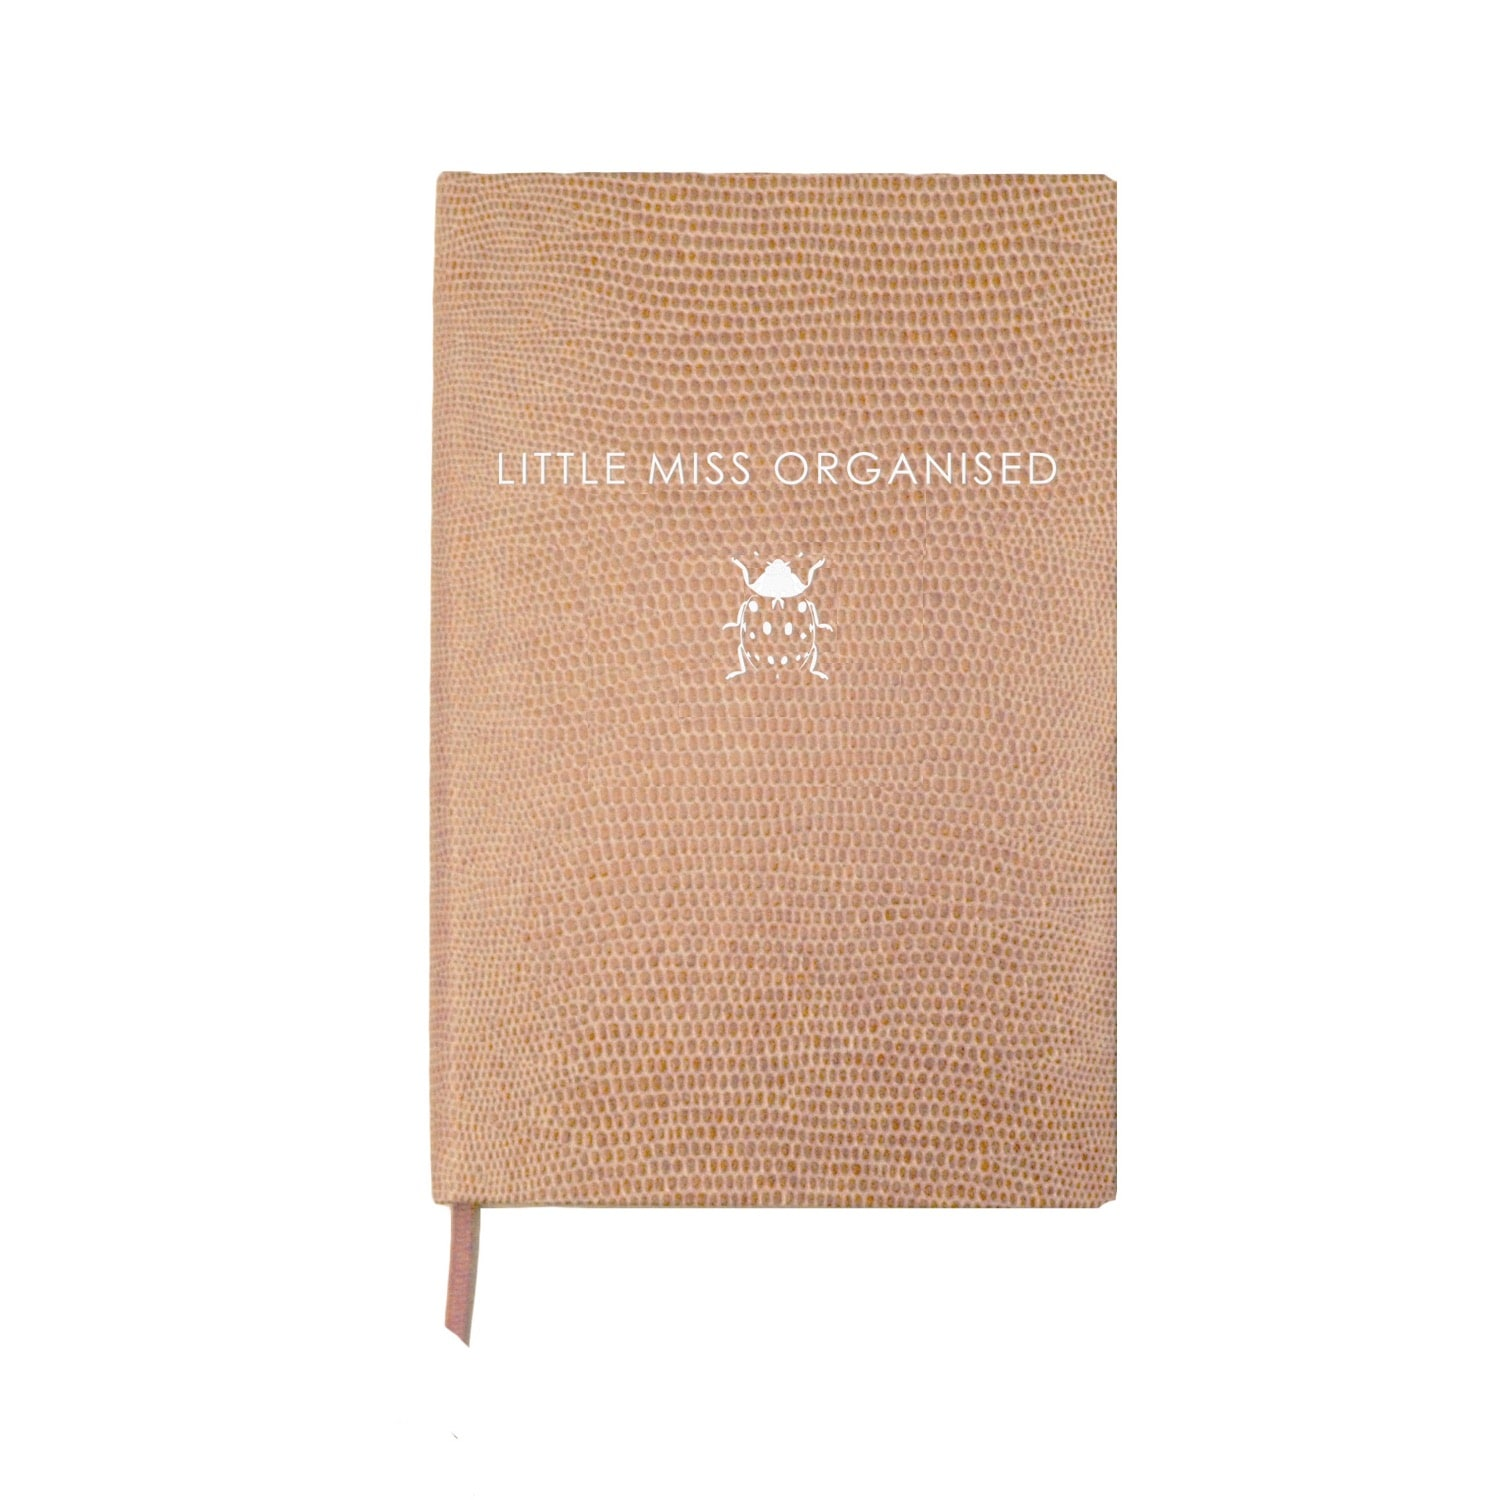 Sloane Stationery - Little Miss Organised Pocket Notebook